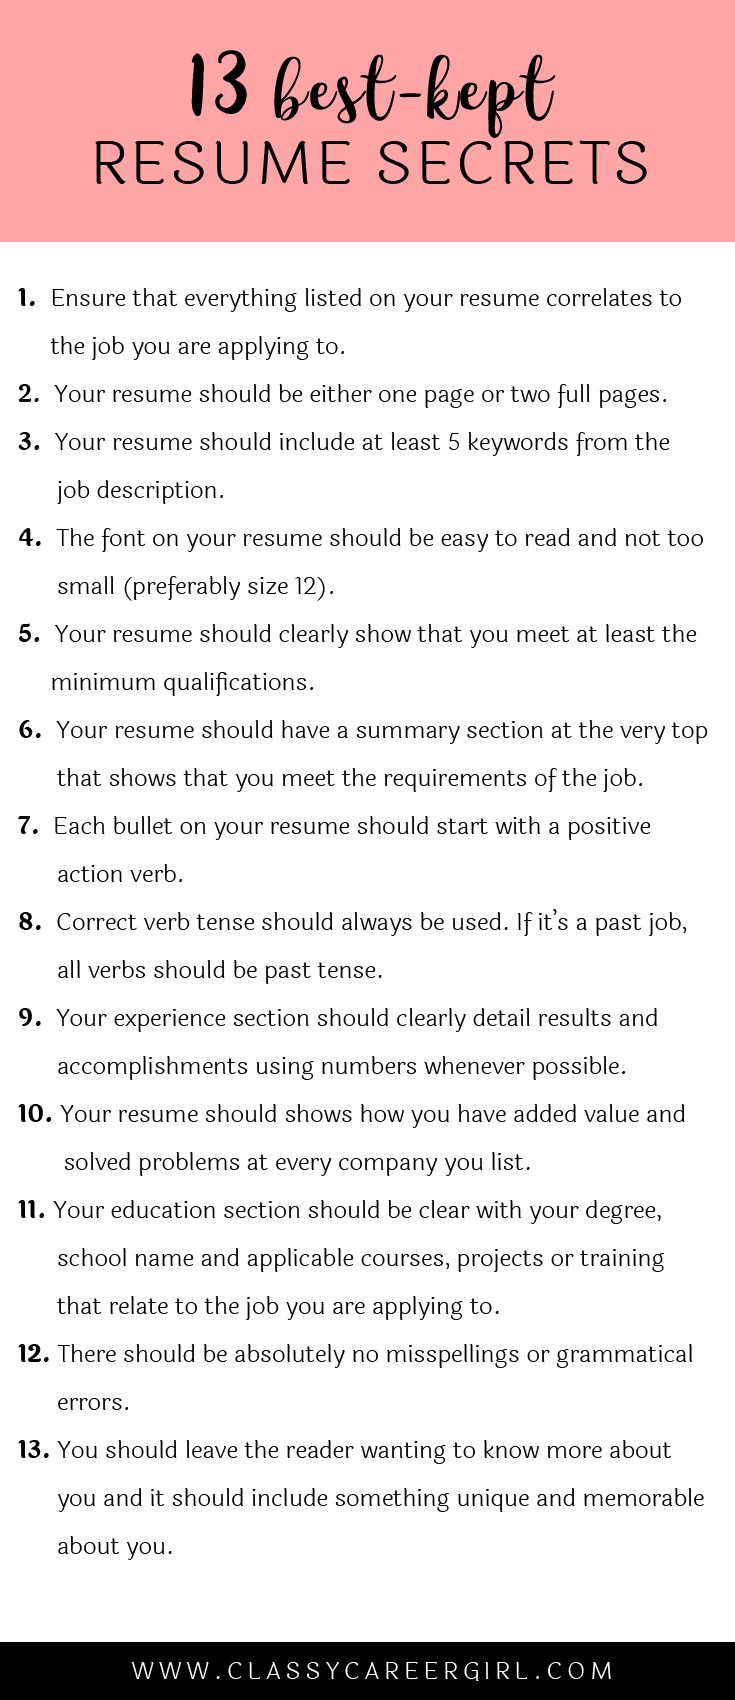 Opposenewapstandardsus  Remarkable  Ideas About Resume On Pinterest  Cv Format Resume  With Excellent Some Hiring Managers Will Toss Your Resume Out If You Dont Know These  With Awesome Assistant Manager Retail Resume Also Resume Exmples In Addition Construction Project Manager Resume Sample And Nursing Assistant Resume Sample As Well As Online Free Resume Additionally Baseball Coach Resume From Pinterestcom With Opposenewapstandardsus  Excellent  Ideas About Resume On Pinterest  Cv Format Resume  With Awesome Some Hiring Managers Will Toss Your Resume Out If You Dont Know These  And Remarkable Assistant Manager Retail Resume Also Resume Exmples In Addition Construction Project Manager Resume Sample From Pinterestcom